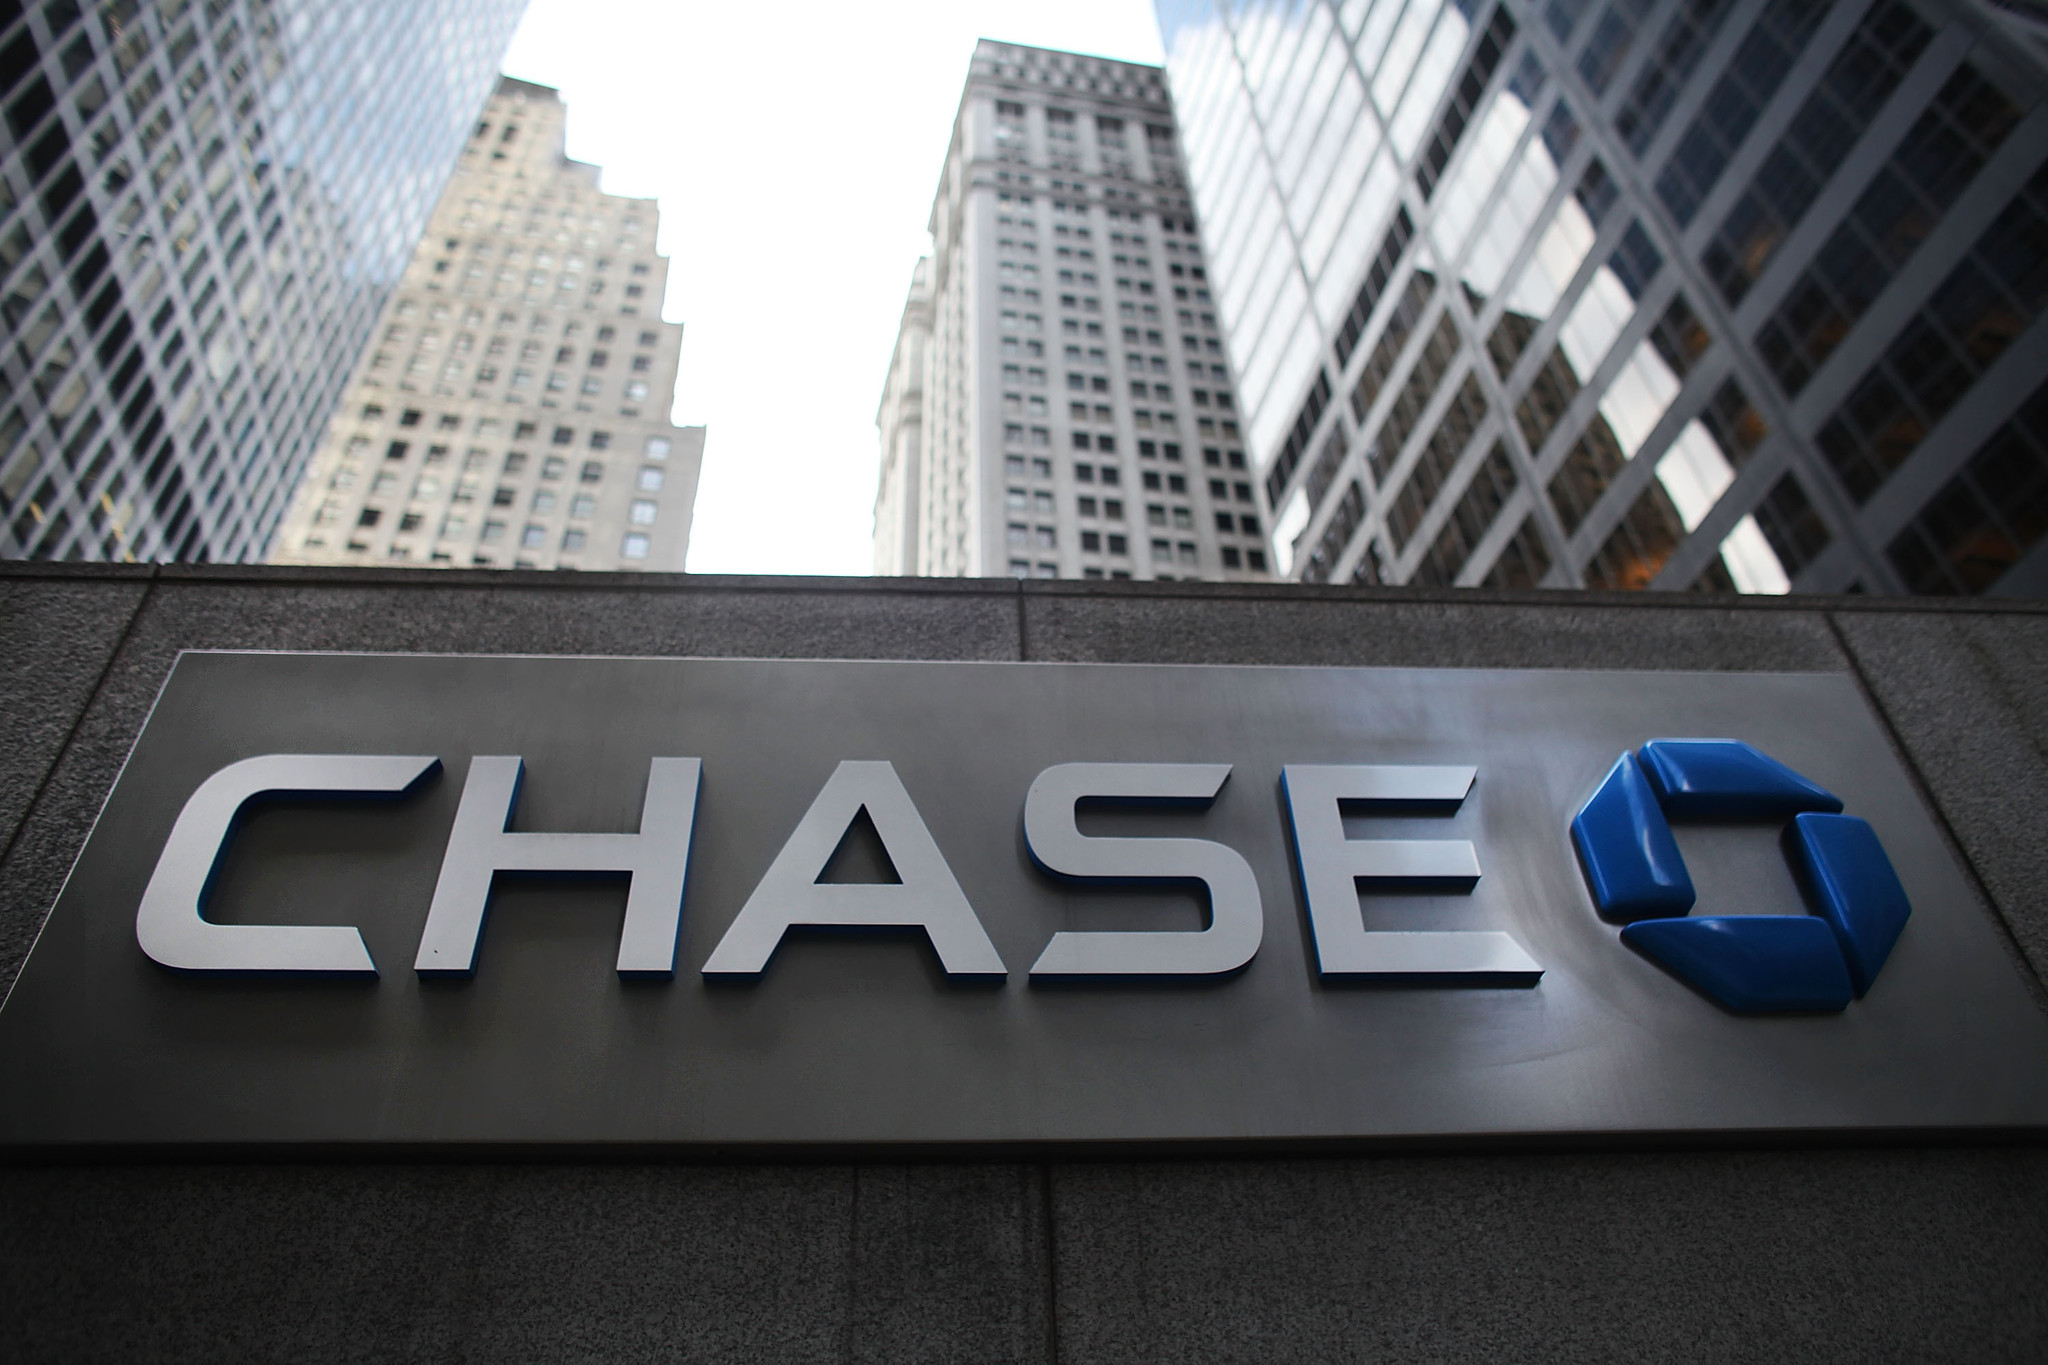 Man gets icy reception from Chase bank - Chicago Tribune